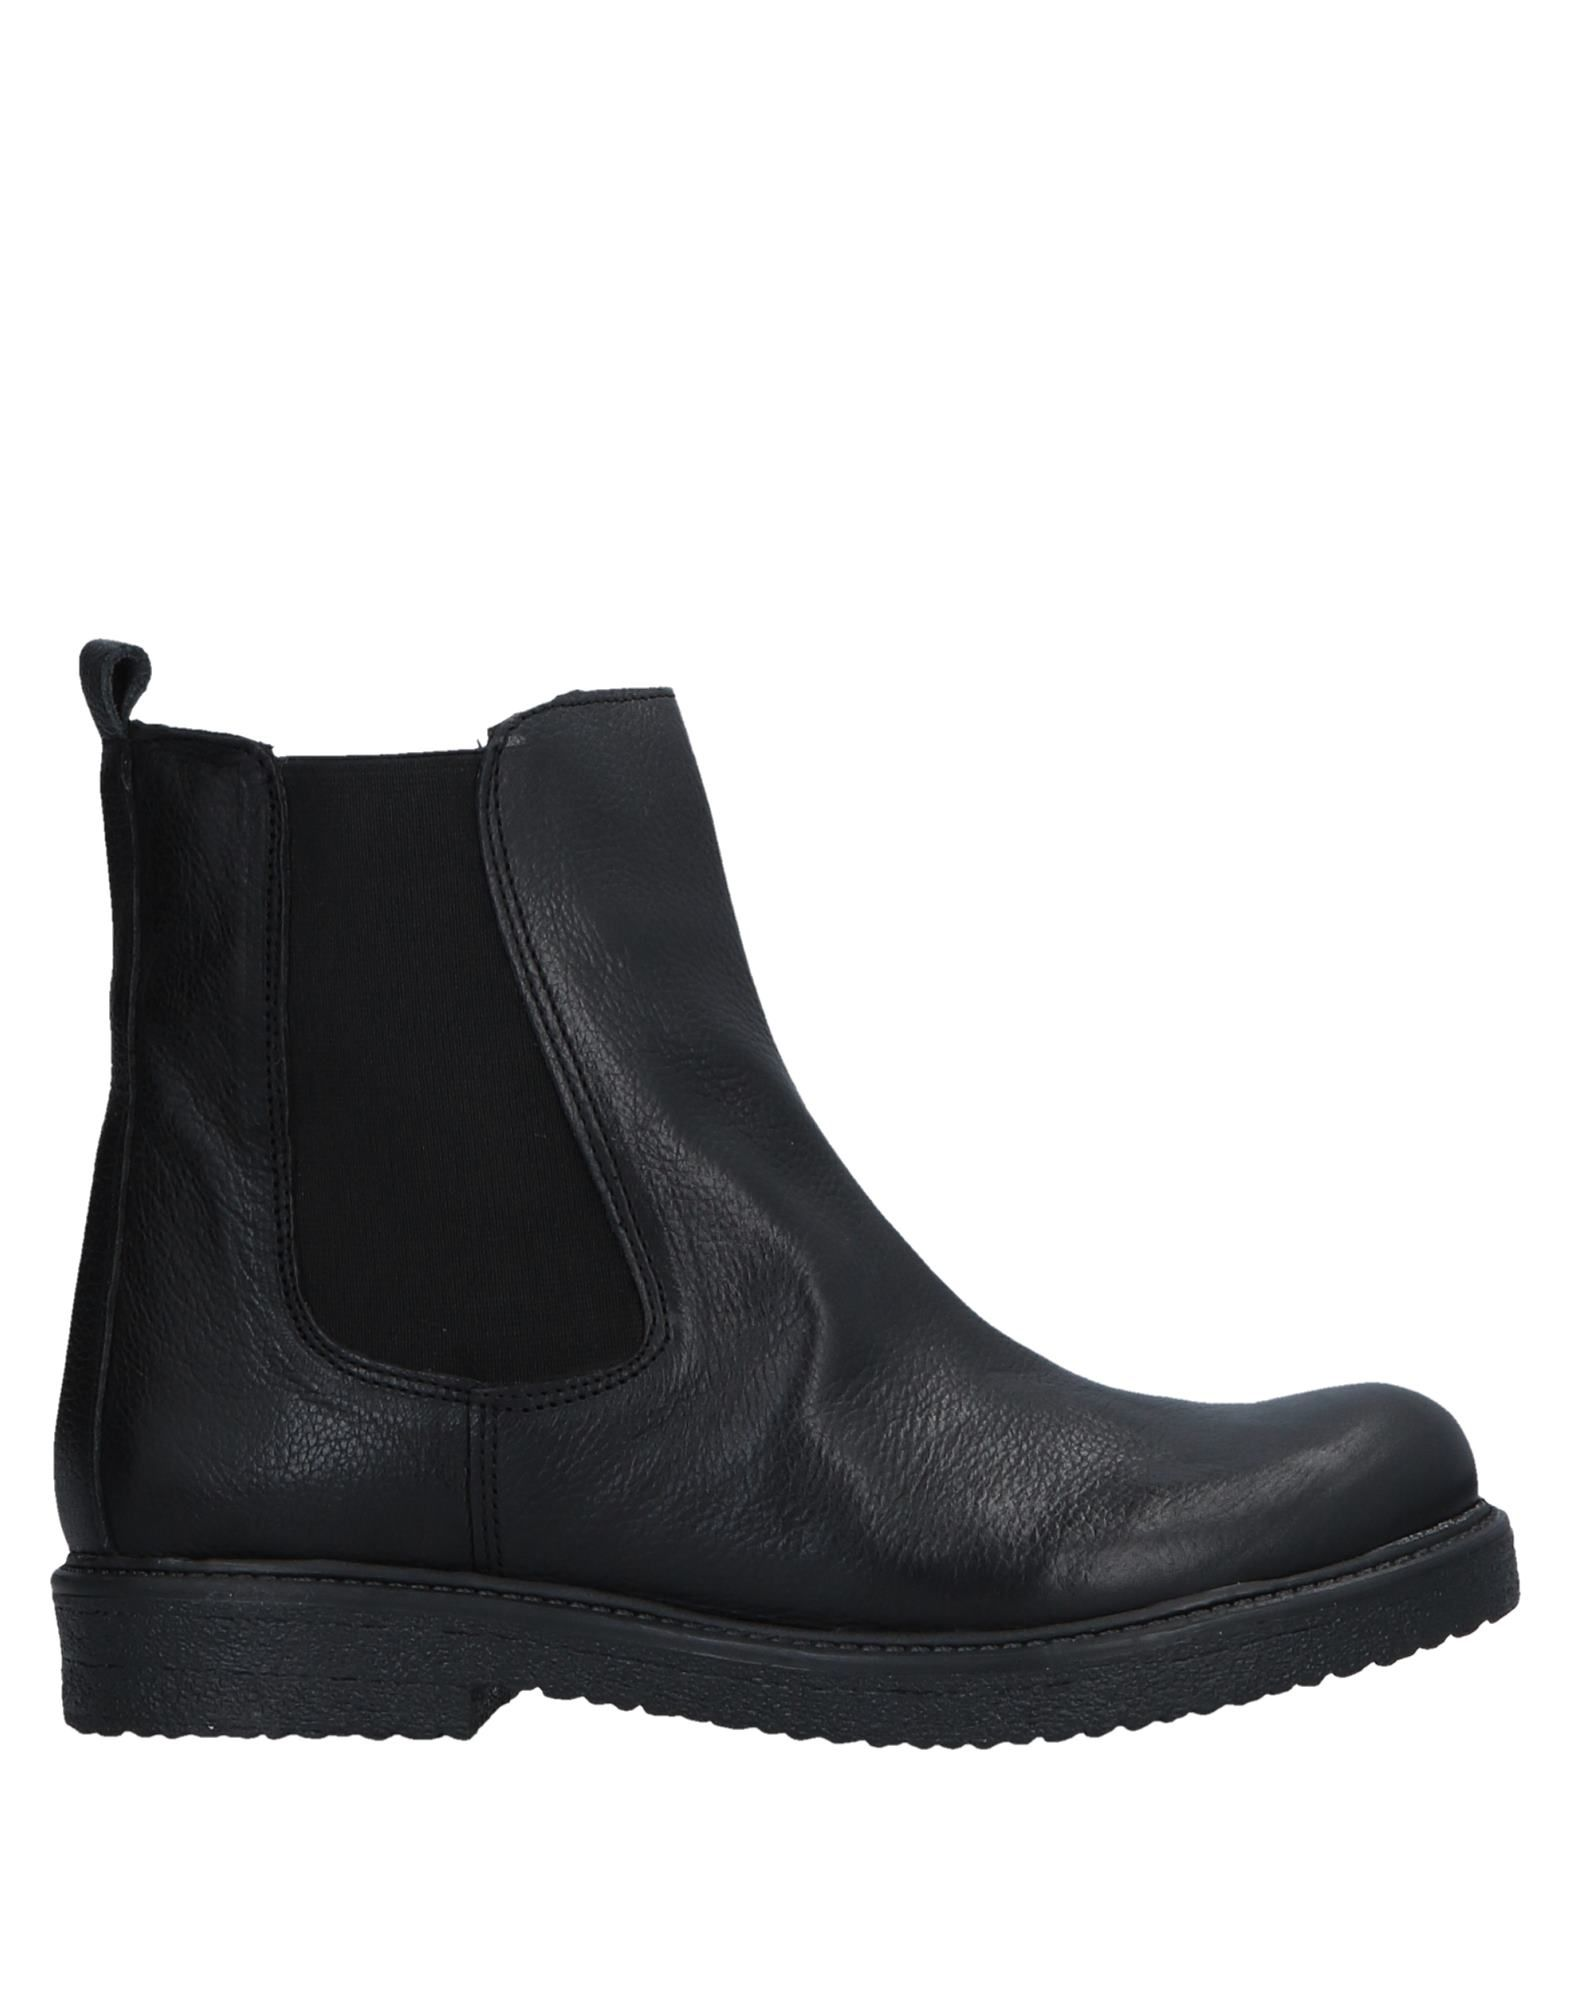 Roberto Della Croce Ankle Boot - Women Women Women Roberto Della Croce Ankle Boots online on  United Kingdom - 11525982JD e11592